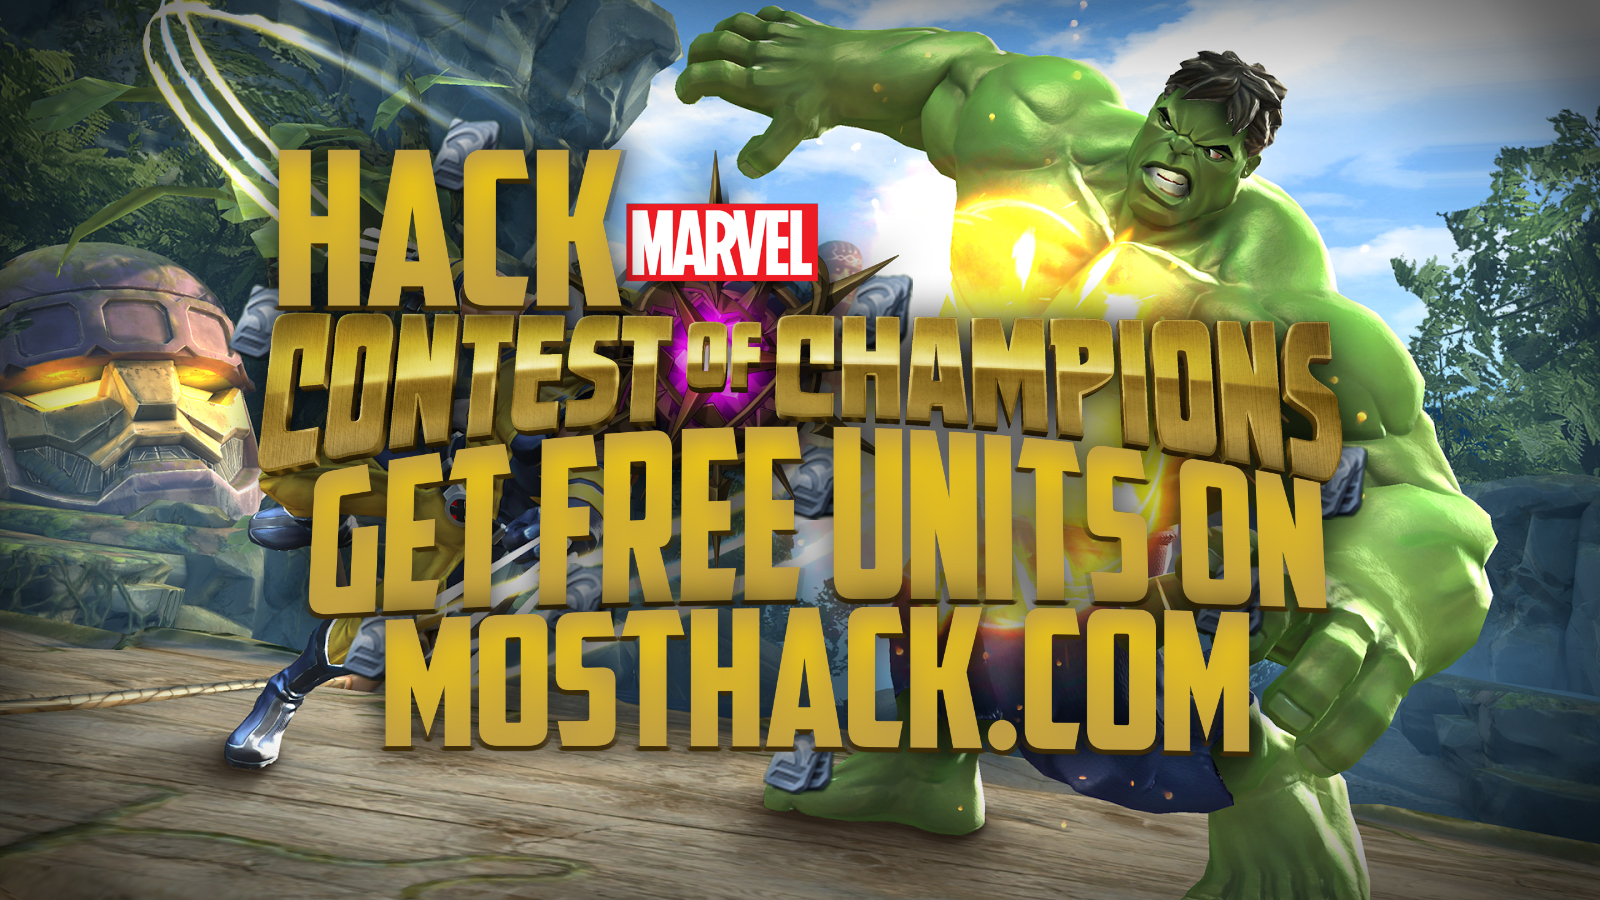 Image currently unavailable. Go to www.generator.mosthack.com and choose MARVEL Contest of Champions image, you will be redirect to MARVEL Contest of Champions Generator site.